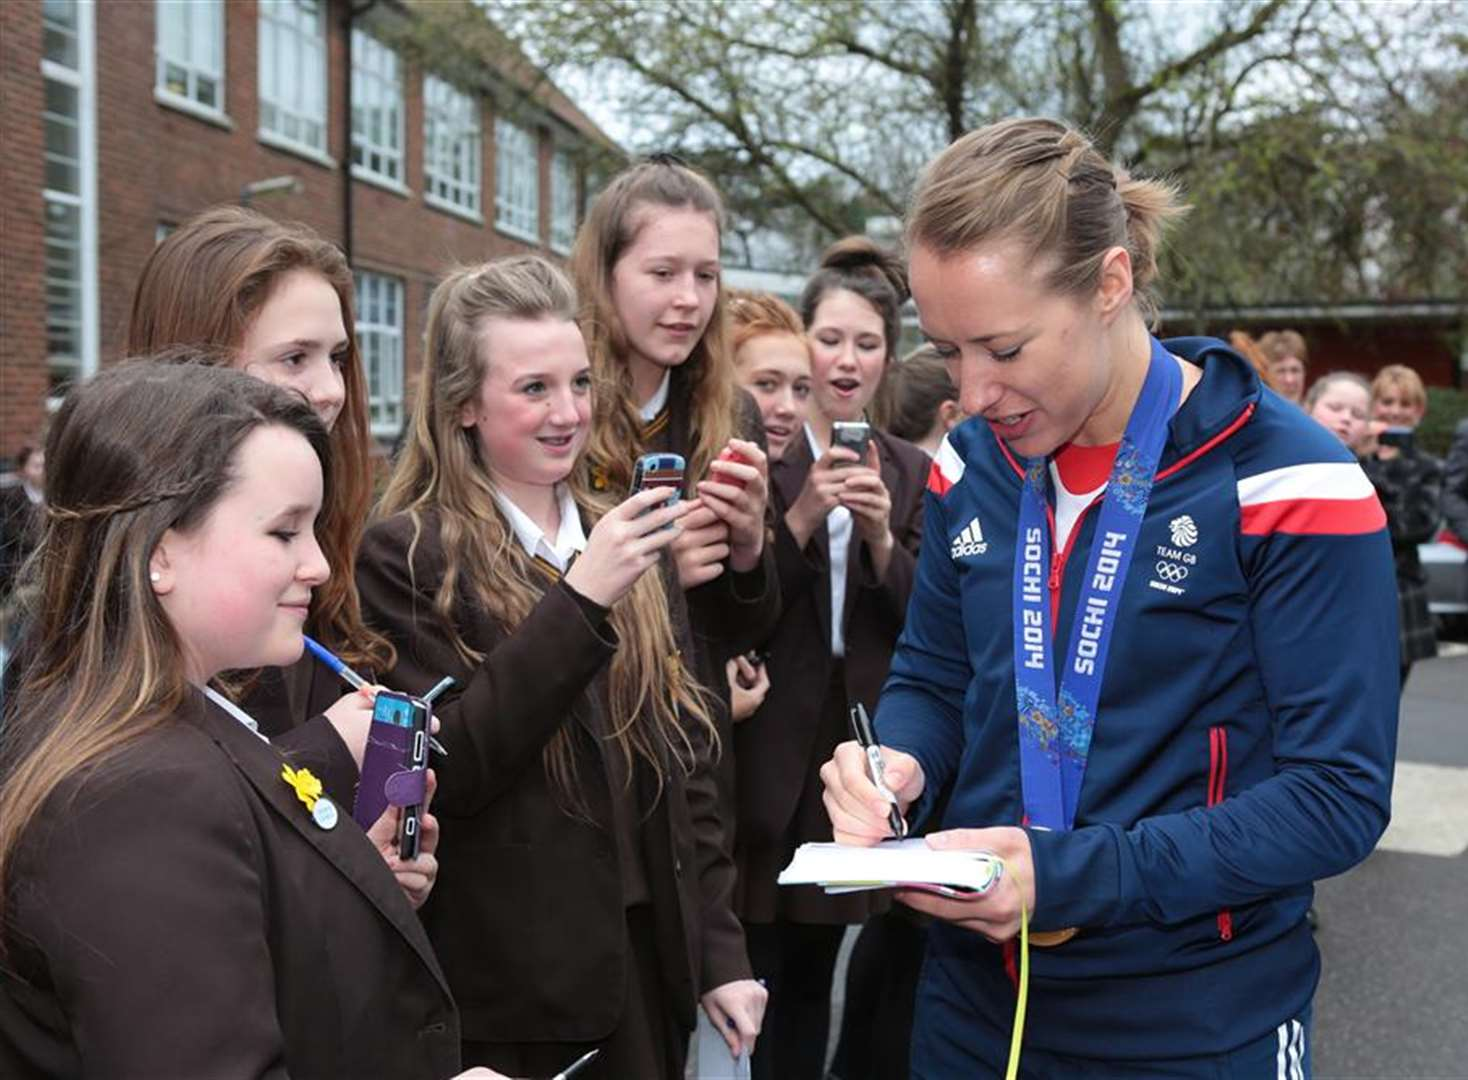 VIDEO: Lizzy Yarnold visits former school